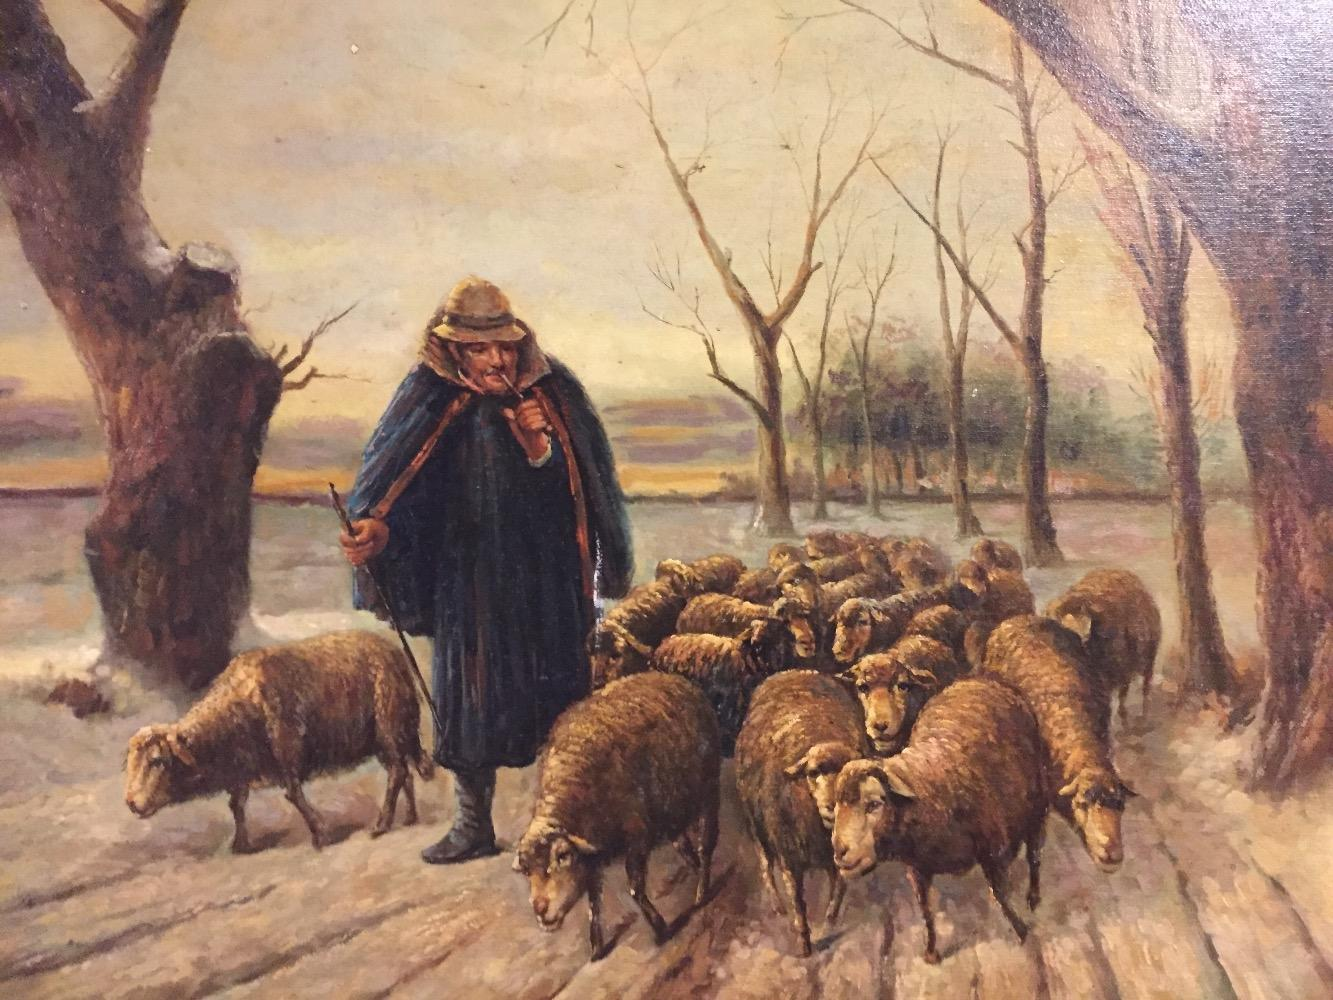 The happy shepherd